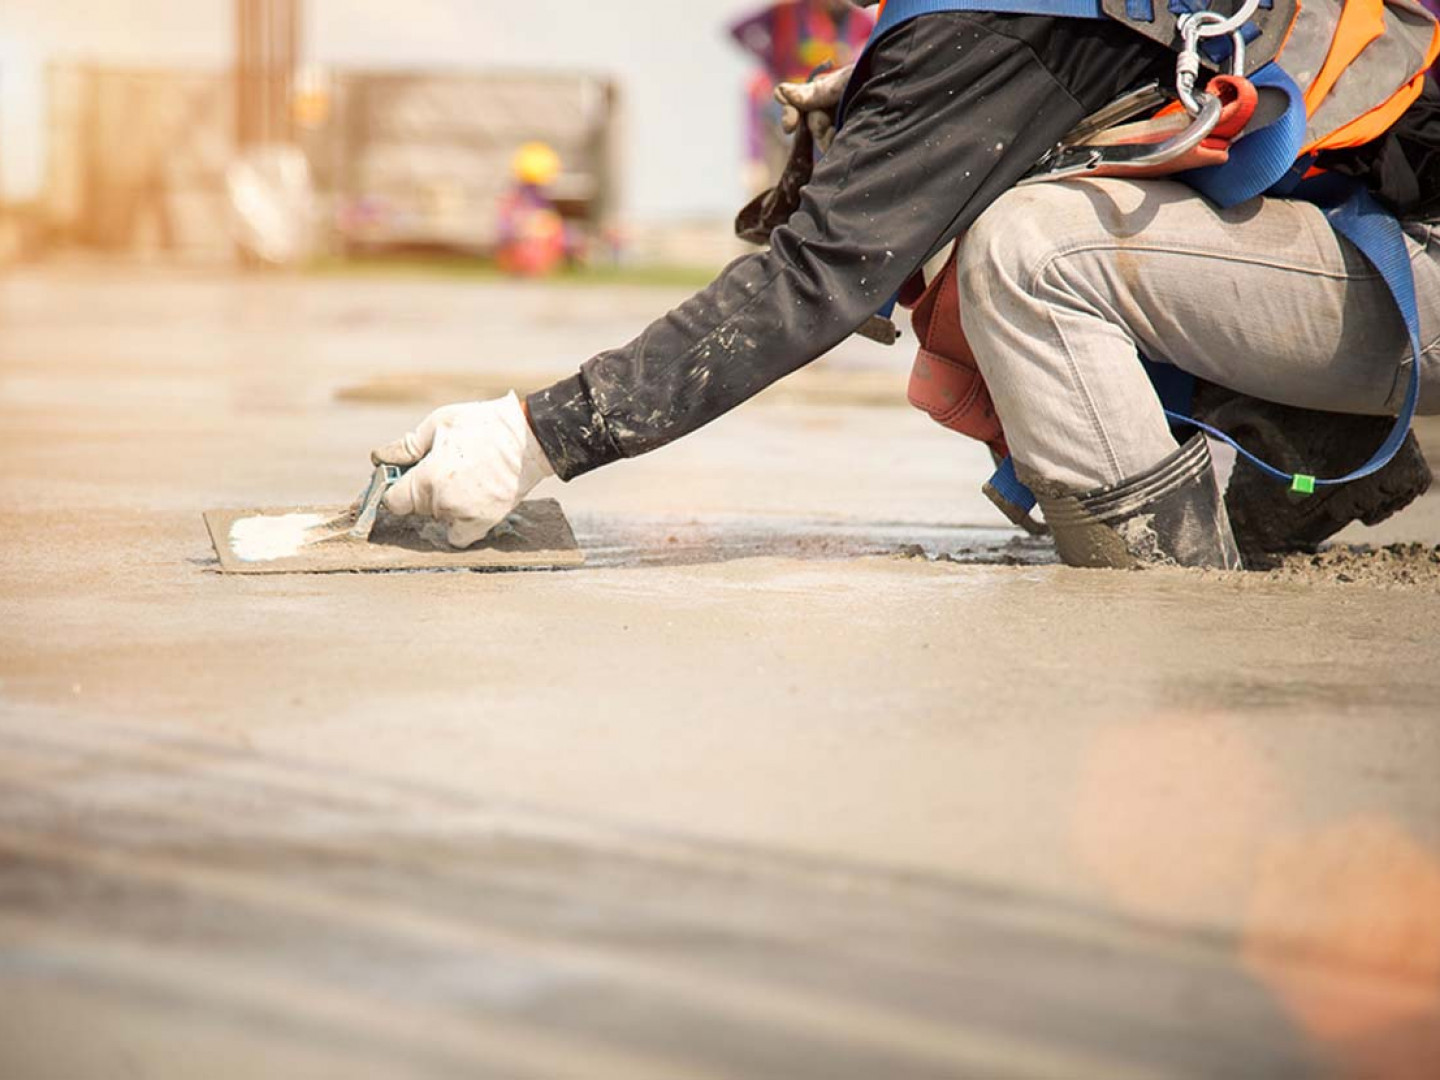 Concrete Installation and Repairs Doesn't Have to Be Hard, Call Pierson Construction